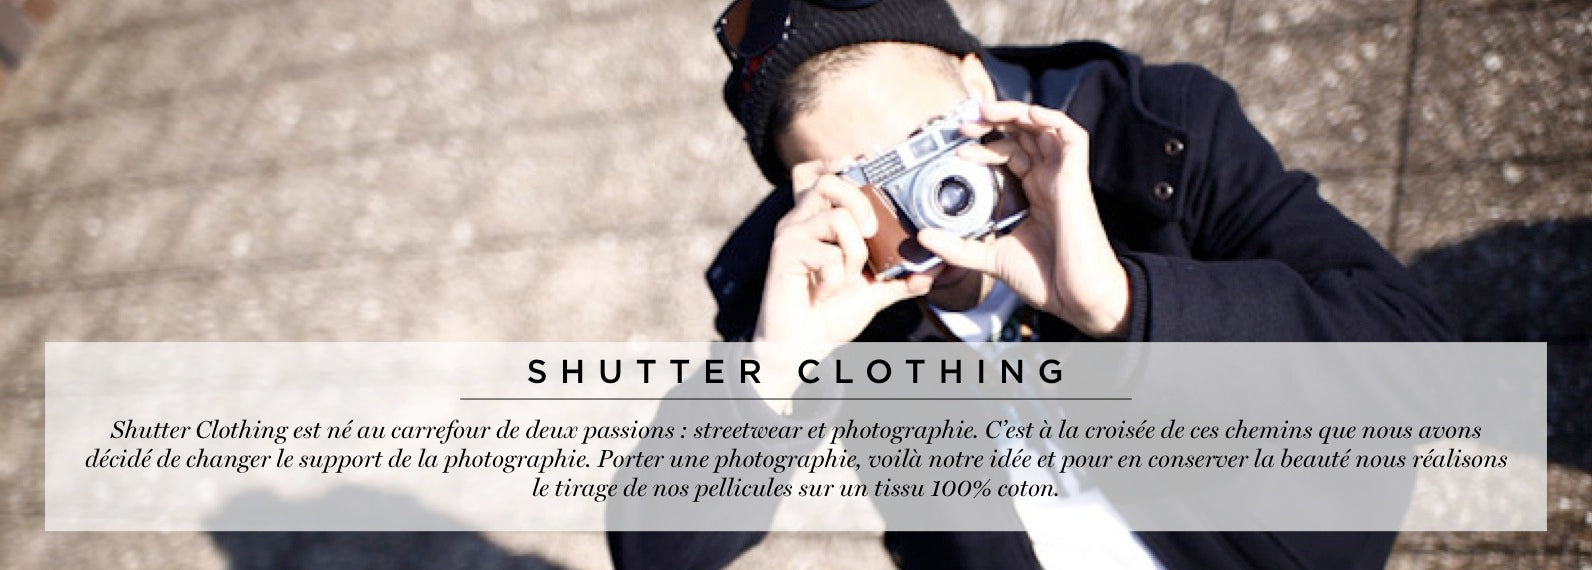 collection shutter clothing t shirt